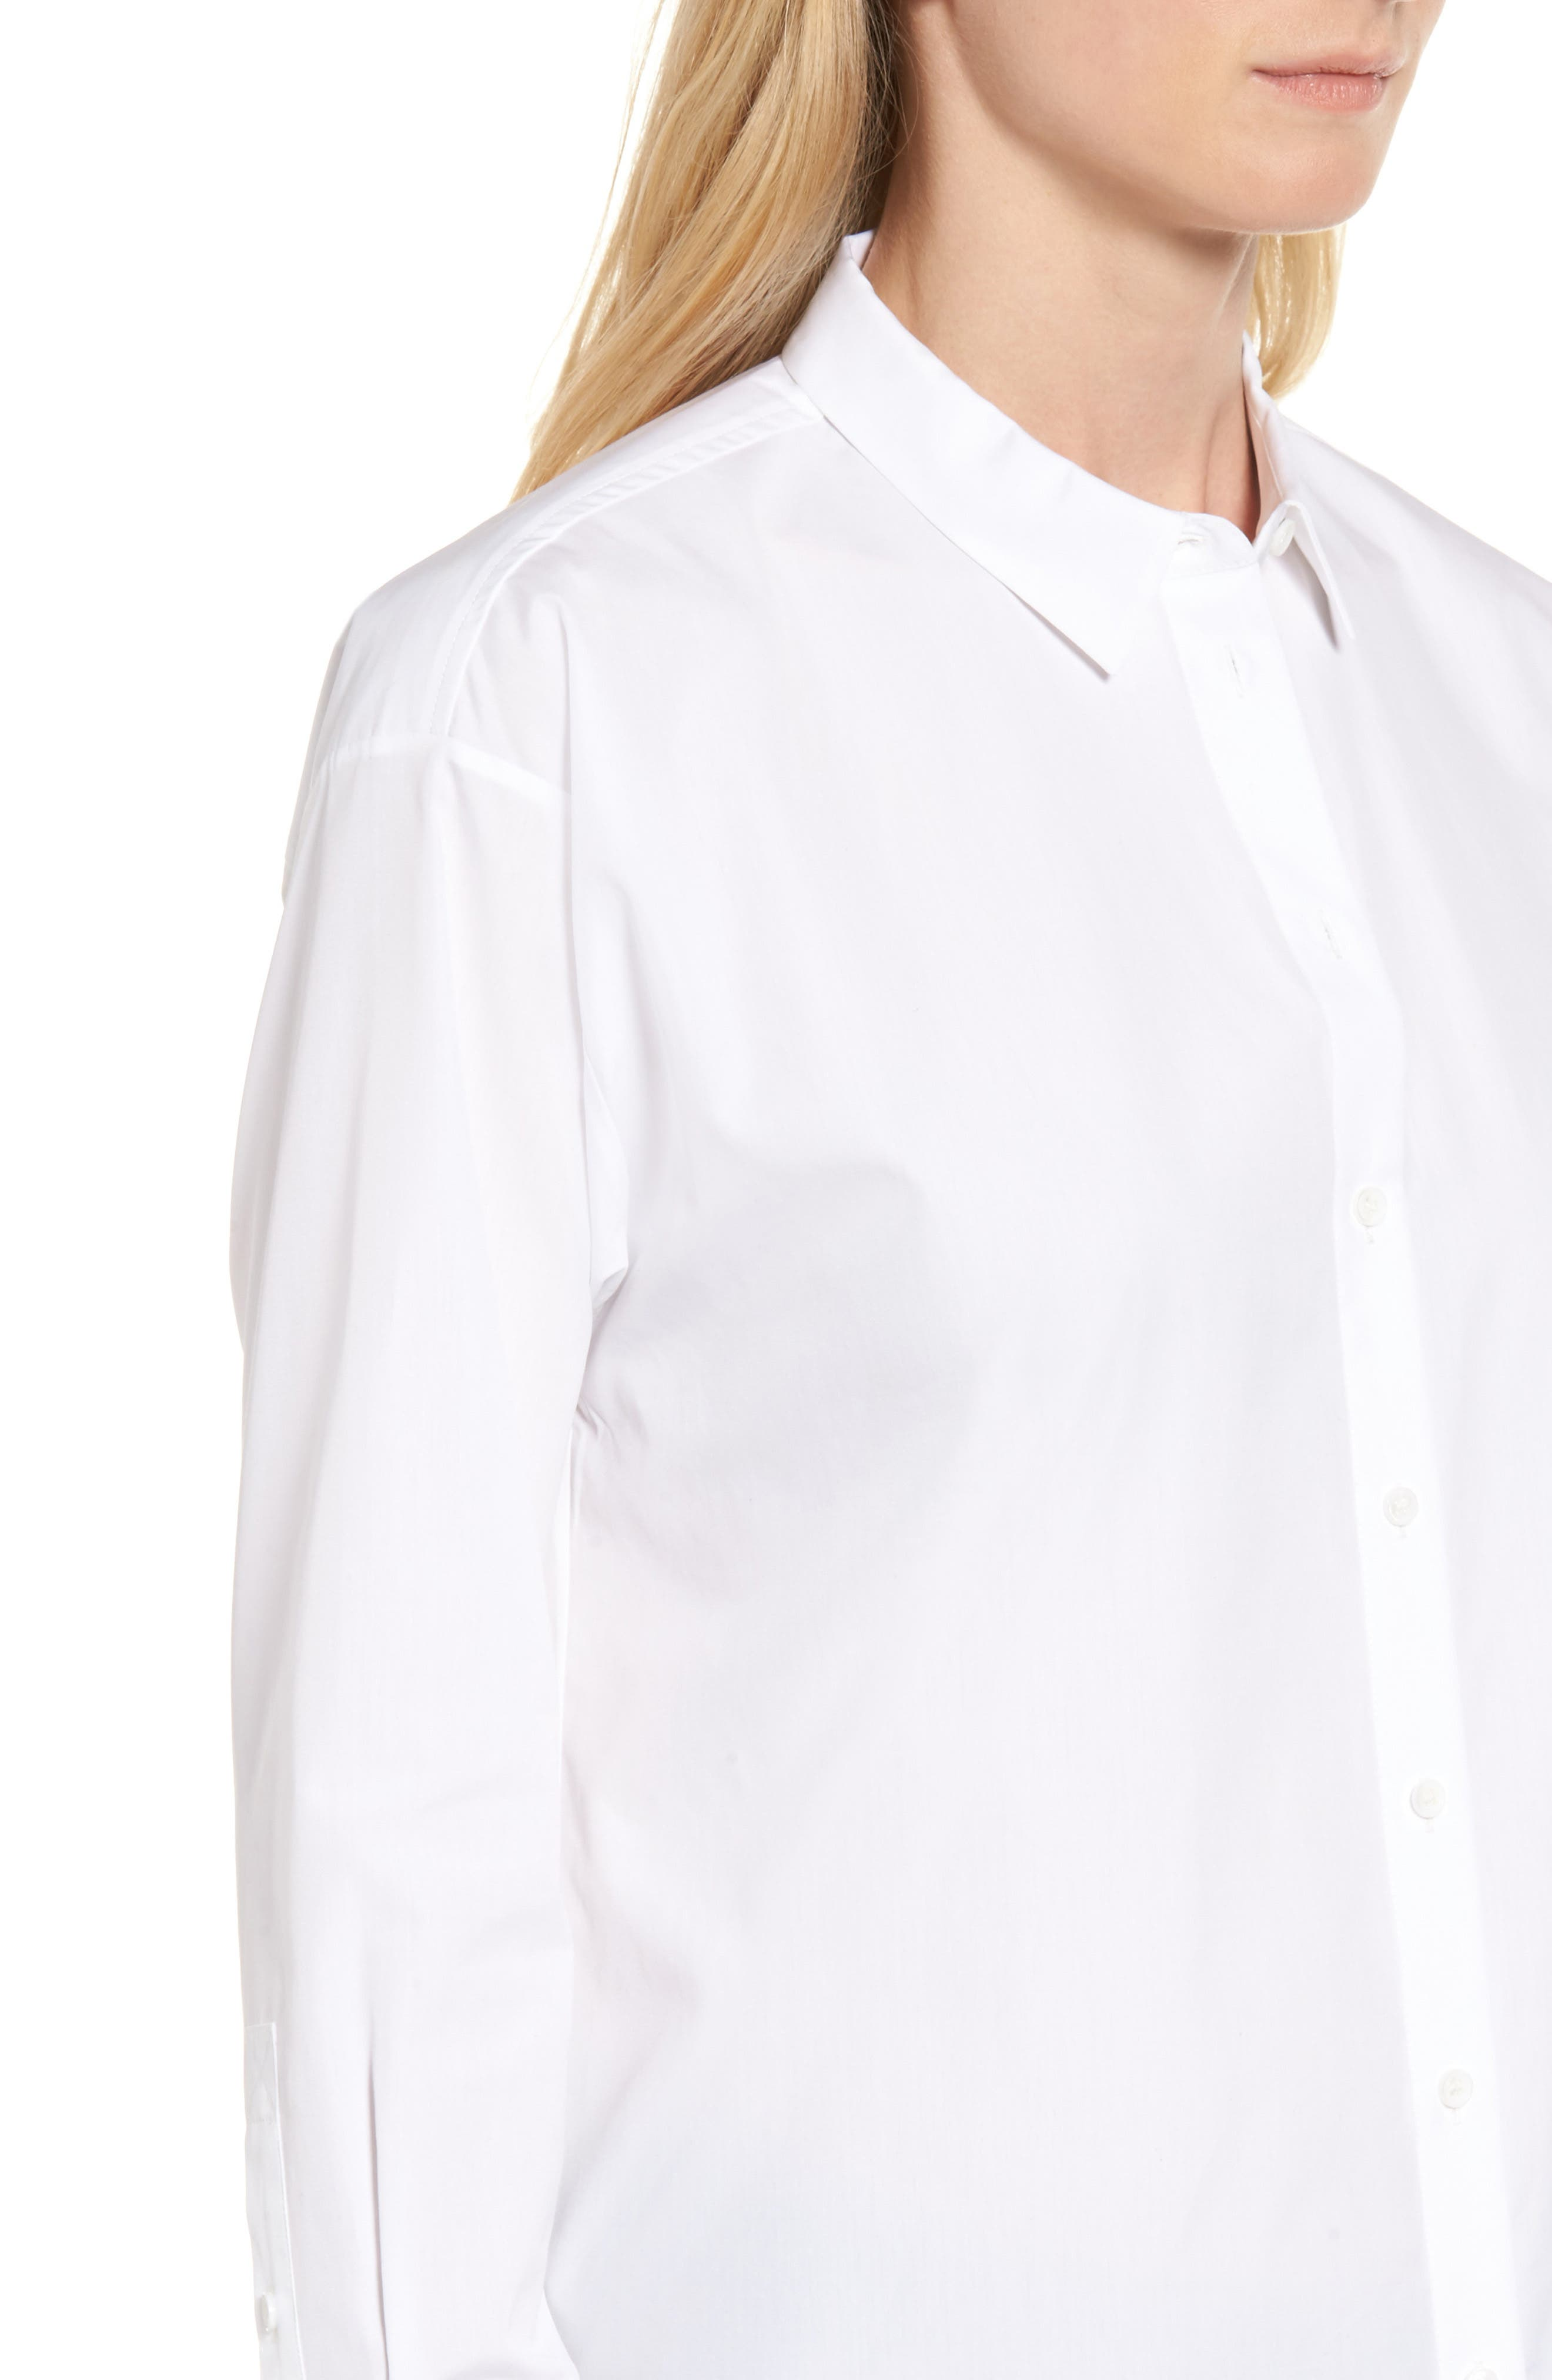 Poplin Shirt,                             Alternate thumbnail 4, color,                             White